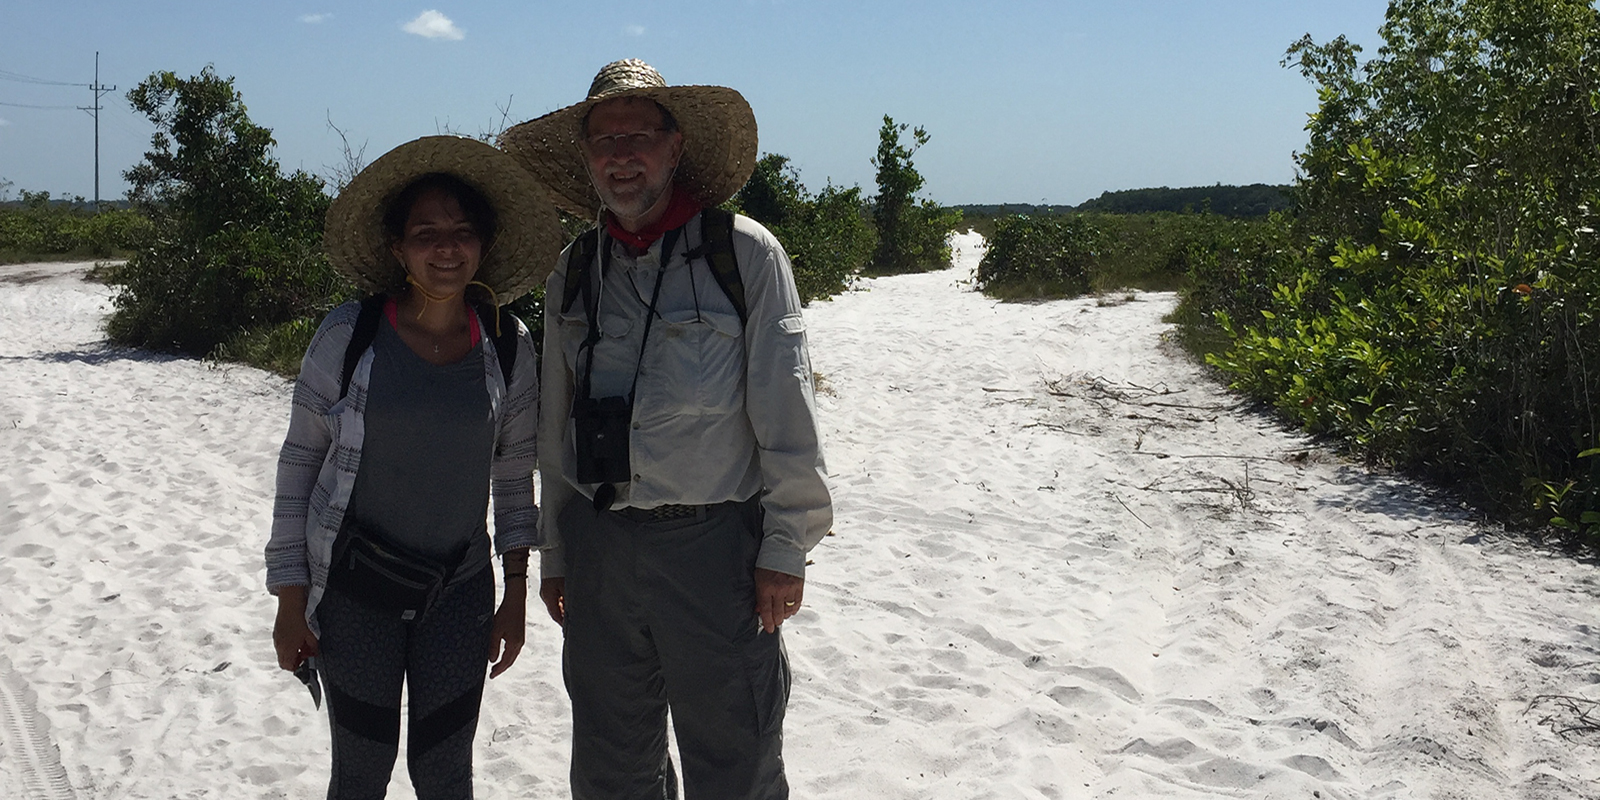 Two researchers posing outside surrounded by white sand that looks like snow